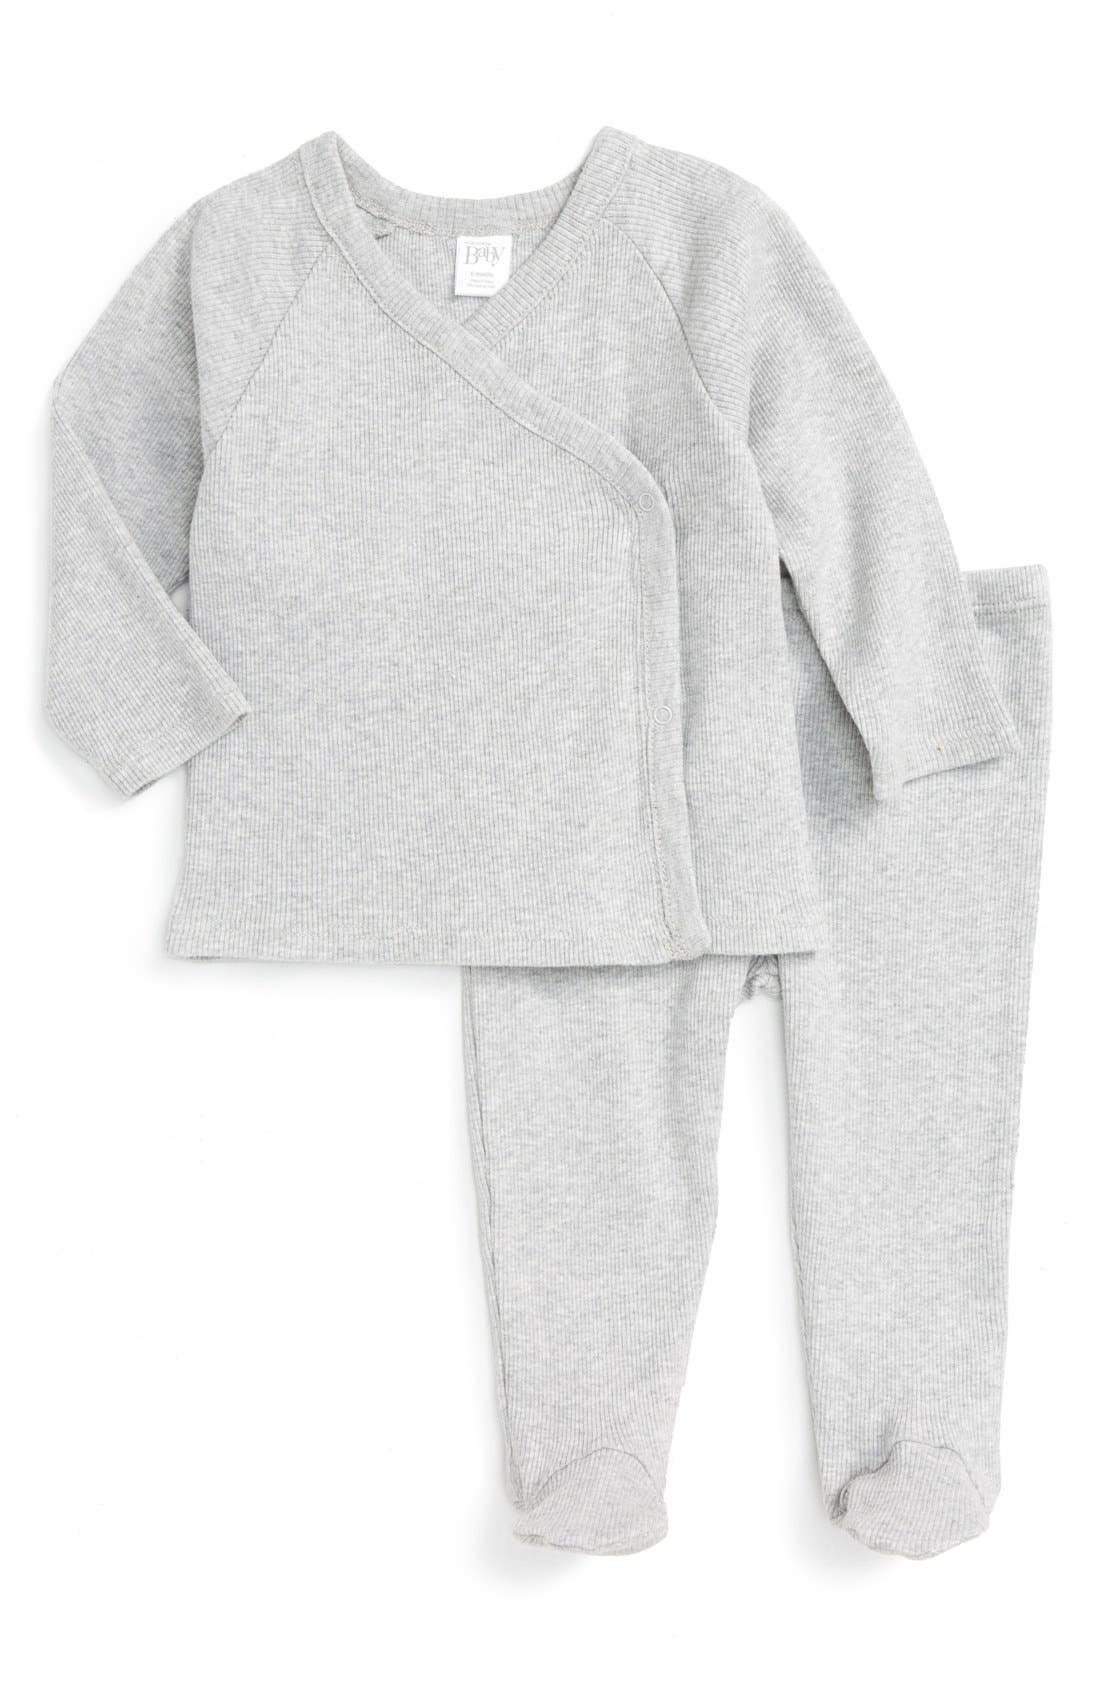 Alternate Image 1 Selected - Nordstrom Baby Rib Knit T-Shirt & Pants Set (Baby)